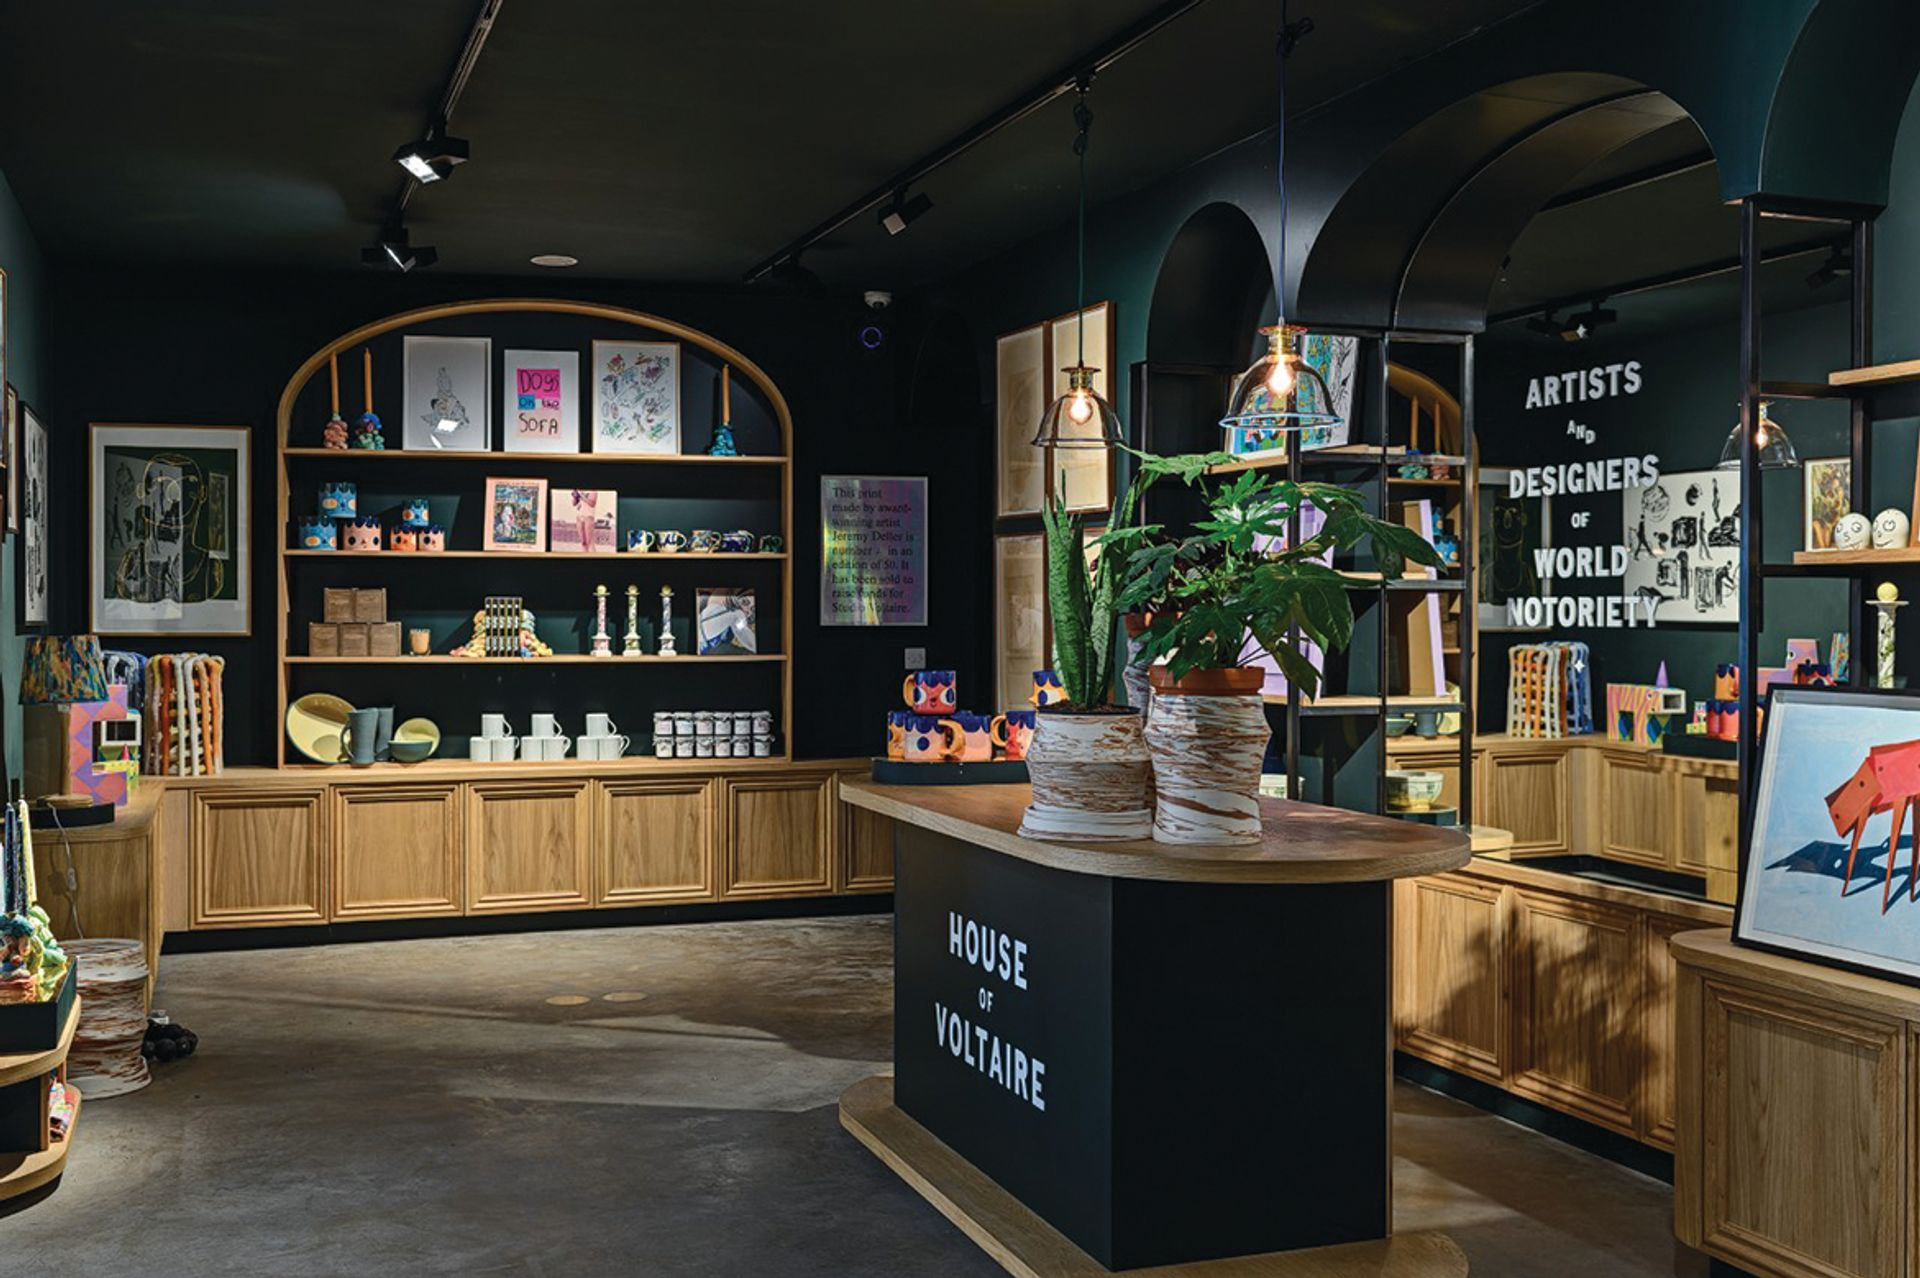 House of Voltaire, Studio Voltaire's design shop, gets a permanent home on the renovated site after using pop-up venues across London over the past few years. Courtesy Studio Voltaire